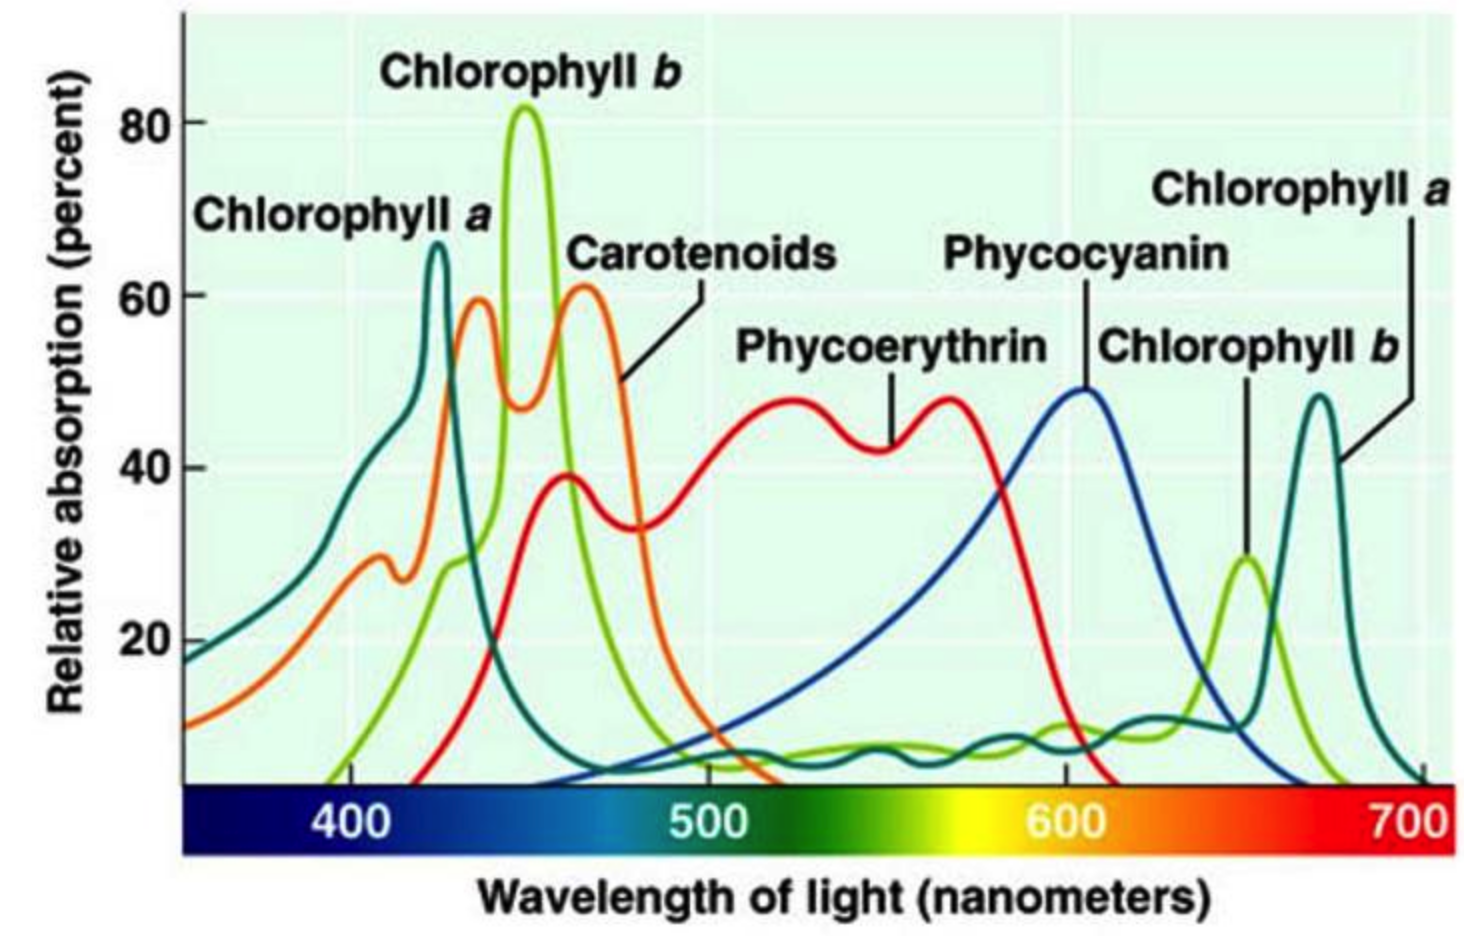 Plant Biology Photosynthesis Chlorophyll Visible Light [ 936 x 1464 Pixel ]